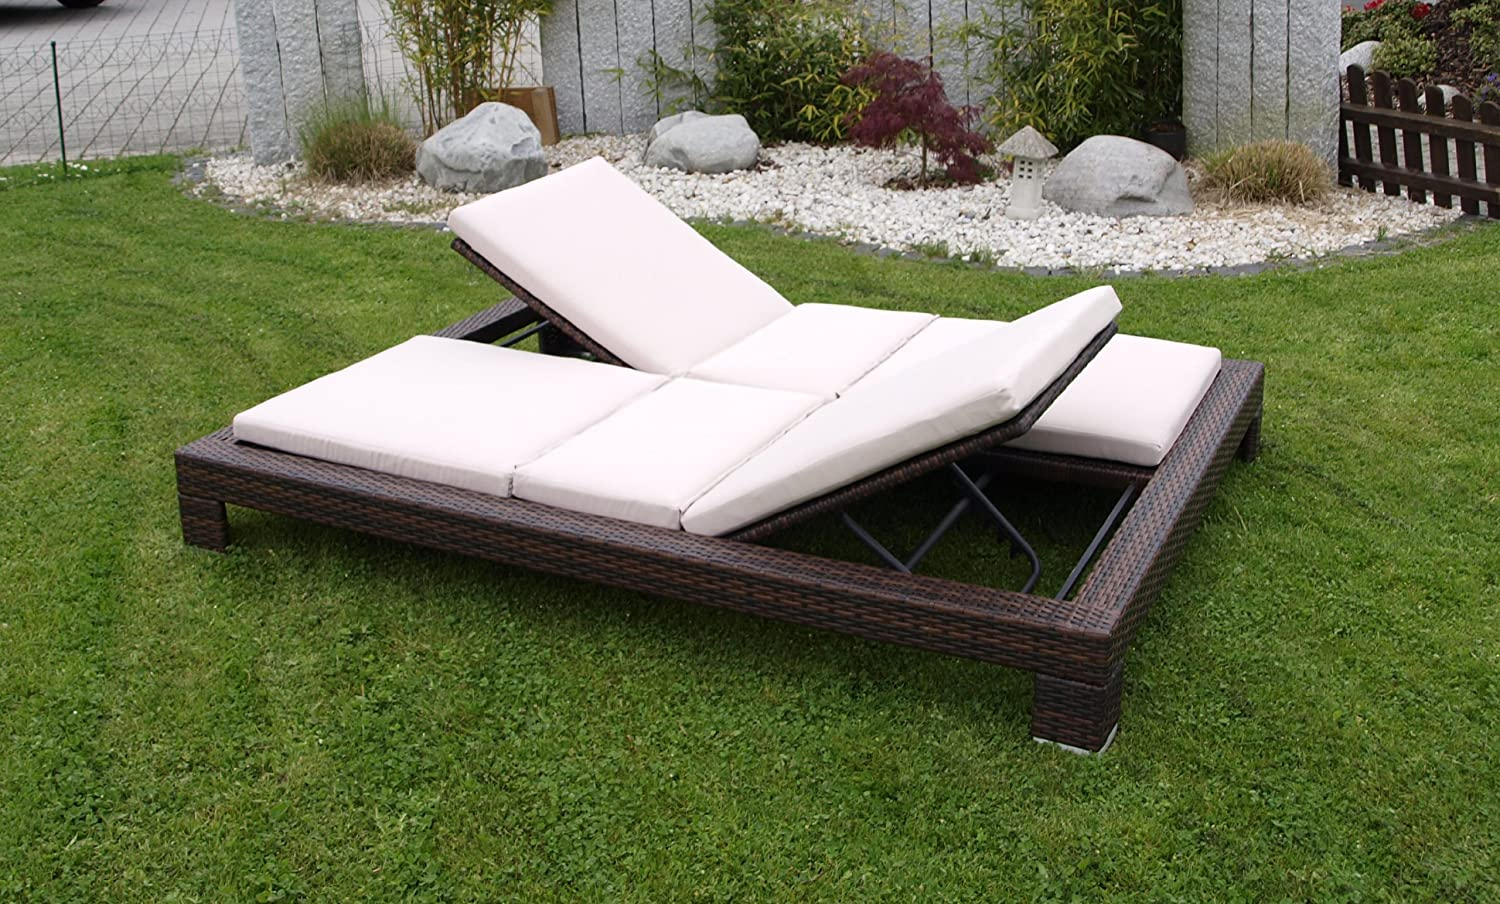 relaxliege rattan cool relaxliege rattan with relaxliege rattan destiny liege casa luna. Black Bedroom Furniture Sets. Home Design Ideas